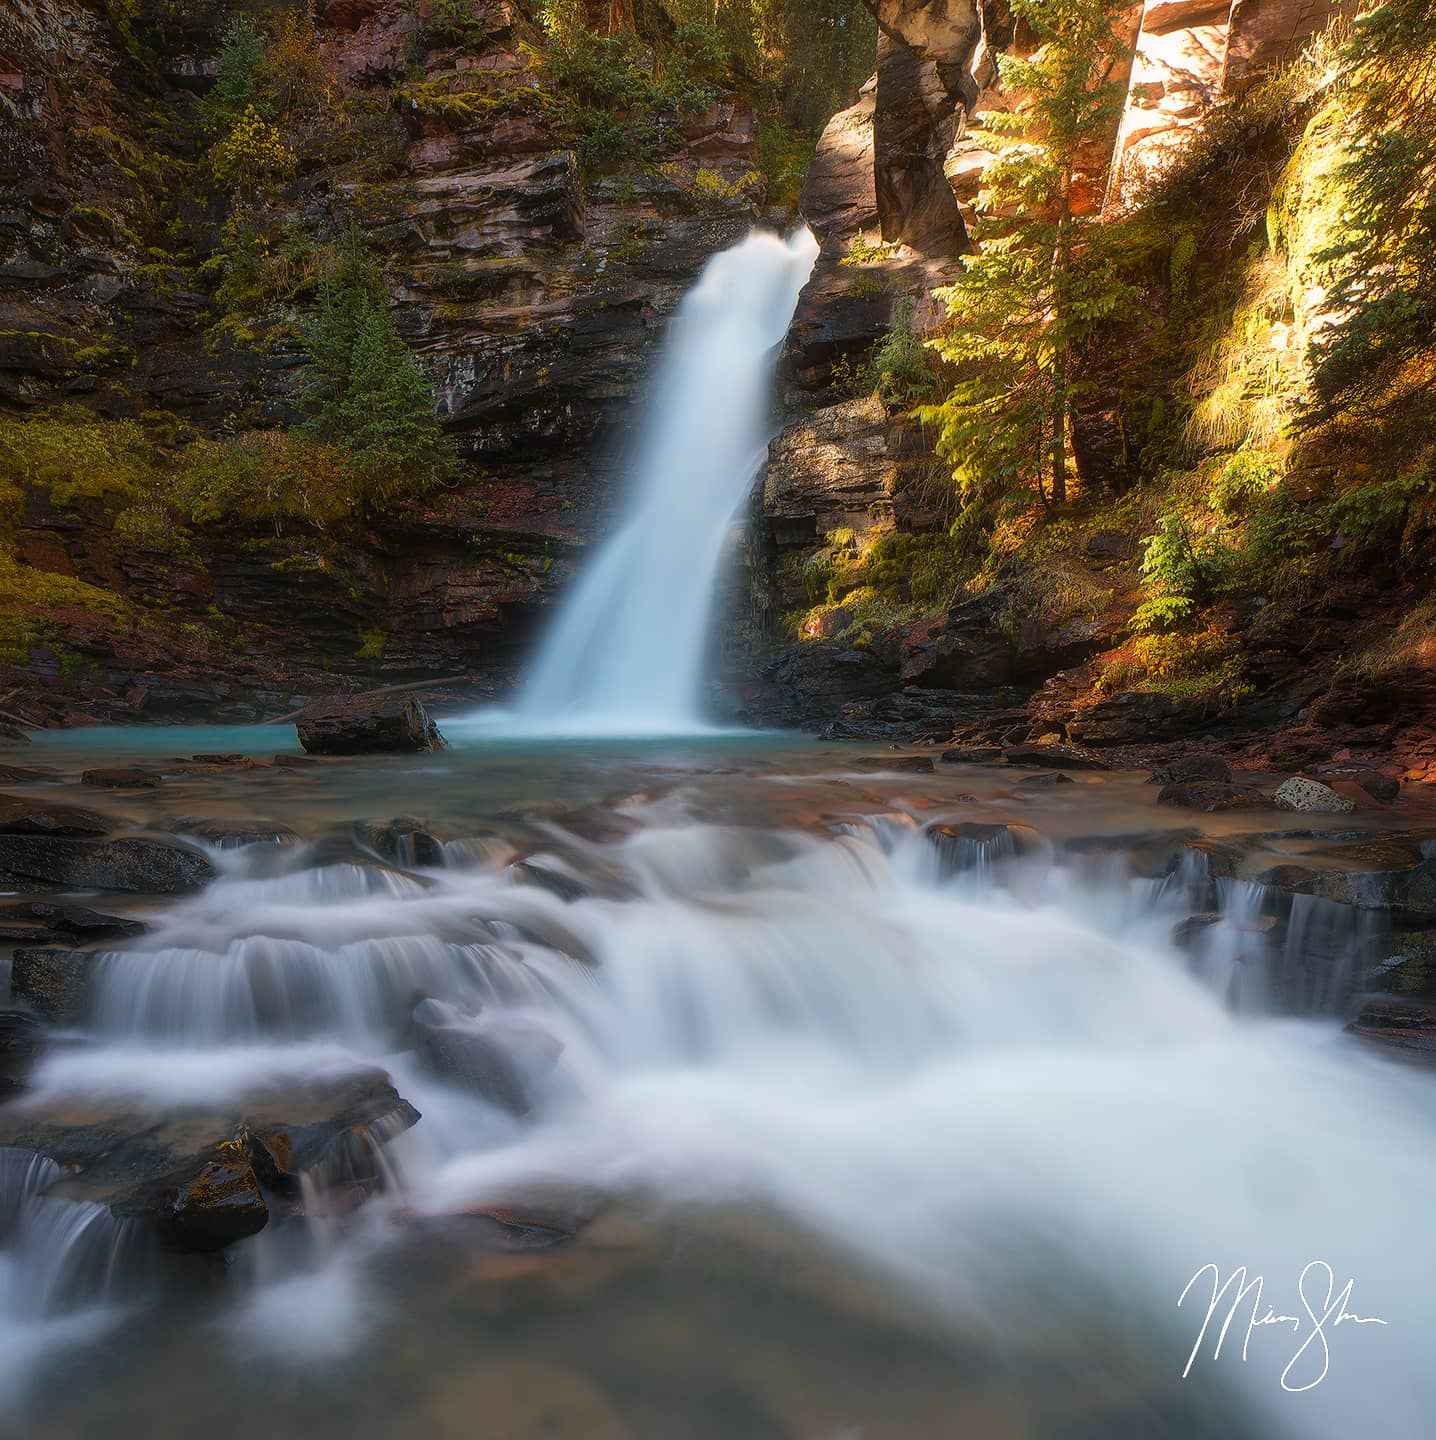 Open edition fine art print of Autumn at South Fork Mineral Creek Falls from Mickey Shannon Photography. Location: Near Silverton, Colorado